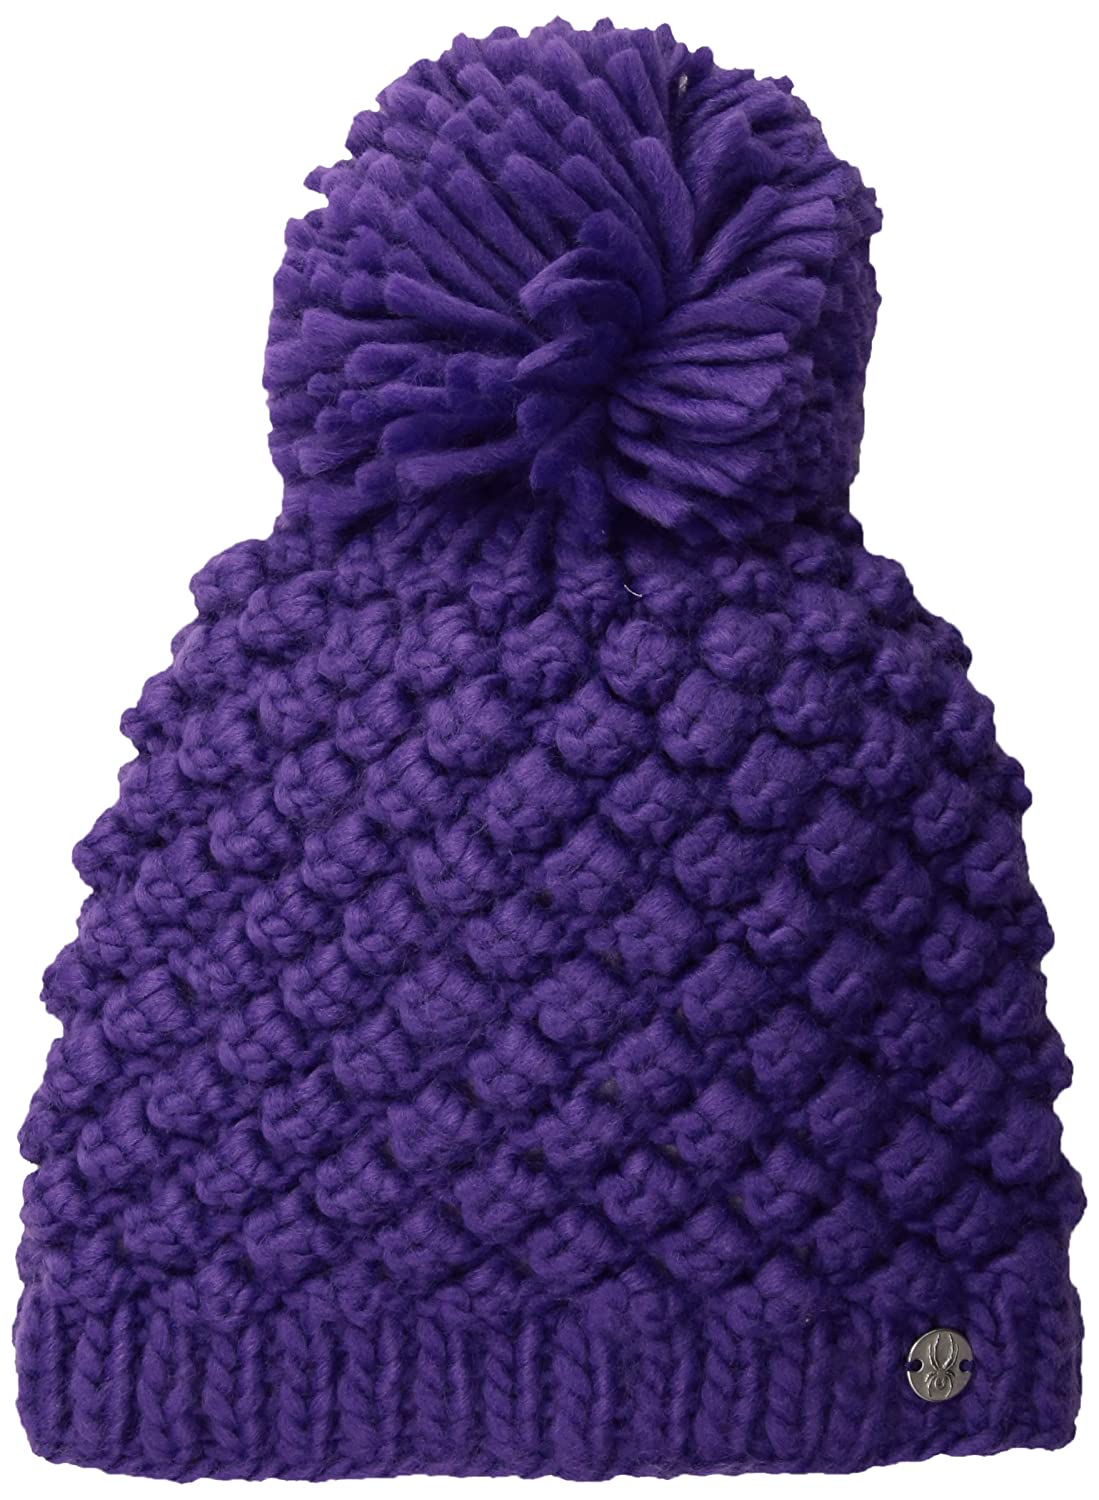 Spyder Active Sports Girl's Burr Berry Hat, Iris, One Size 726612